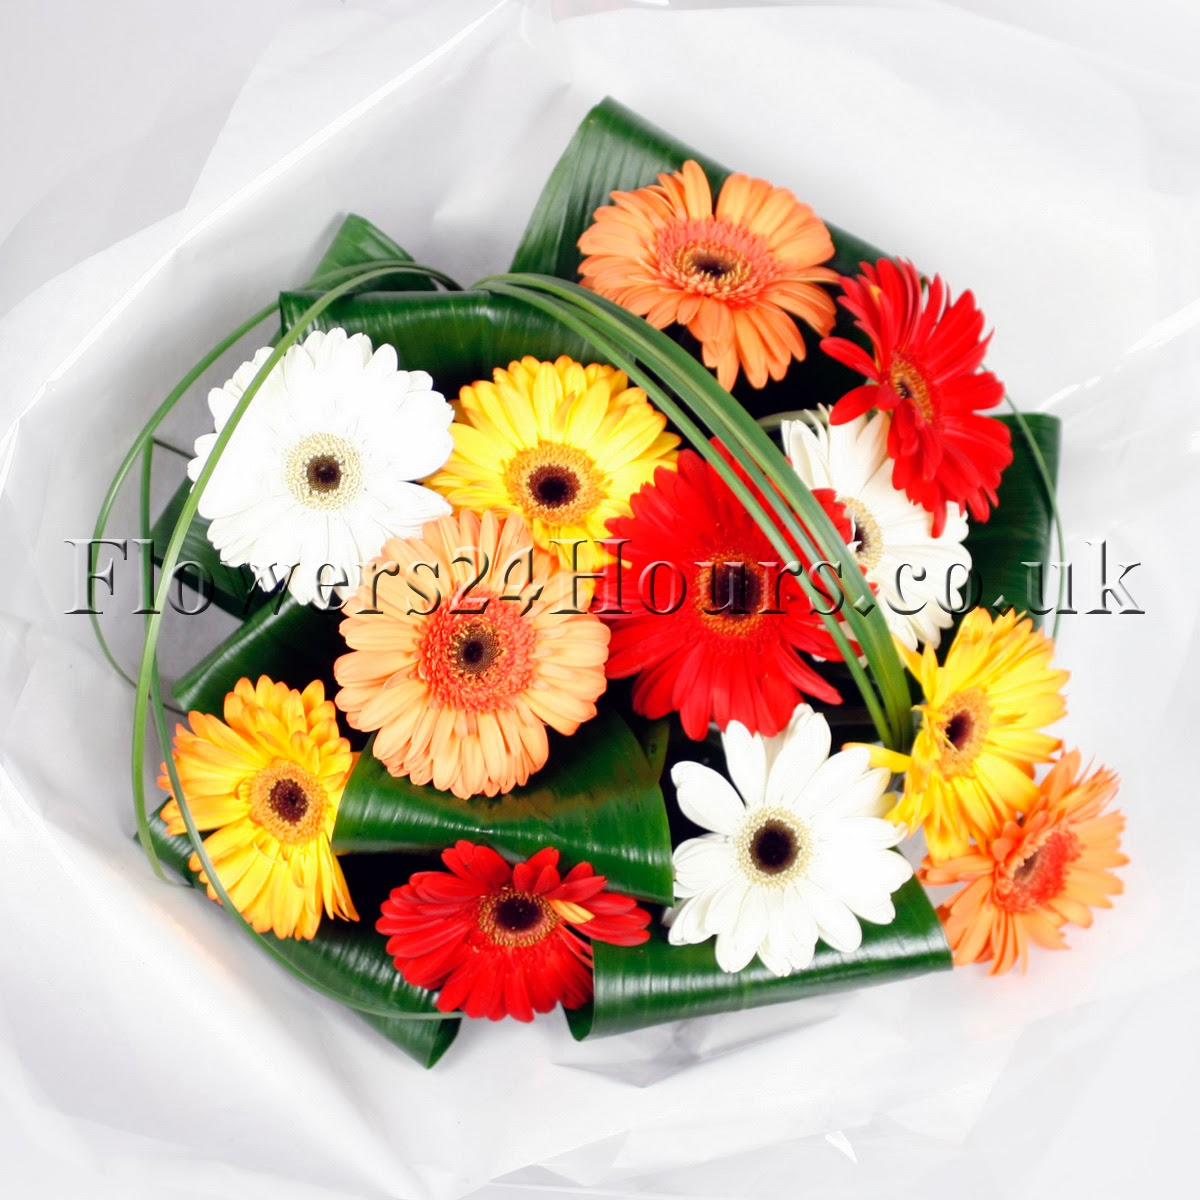 Grand and glamorous gerberas at flowers24hours flower delivery shop florists london flowers delivery london flowers delivery london flower shops in london izmirmasajfo